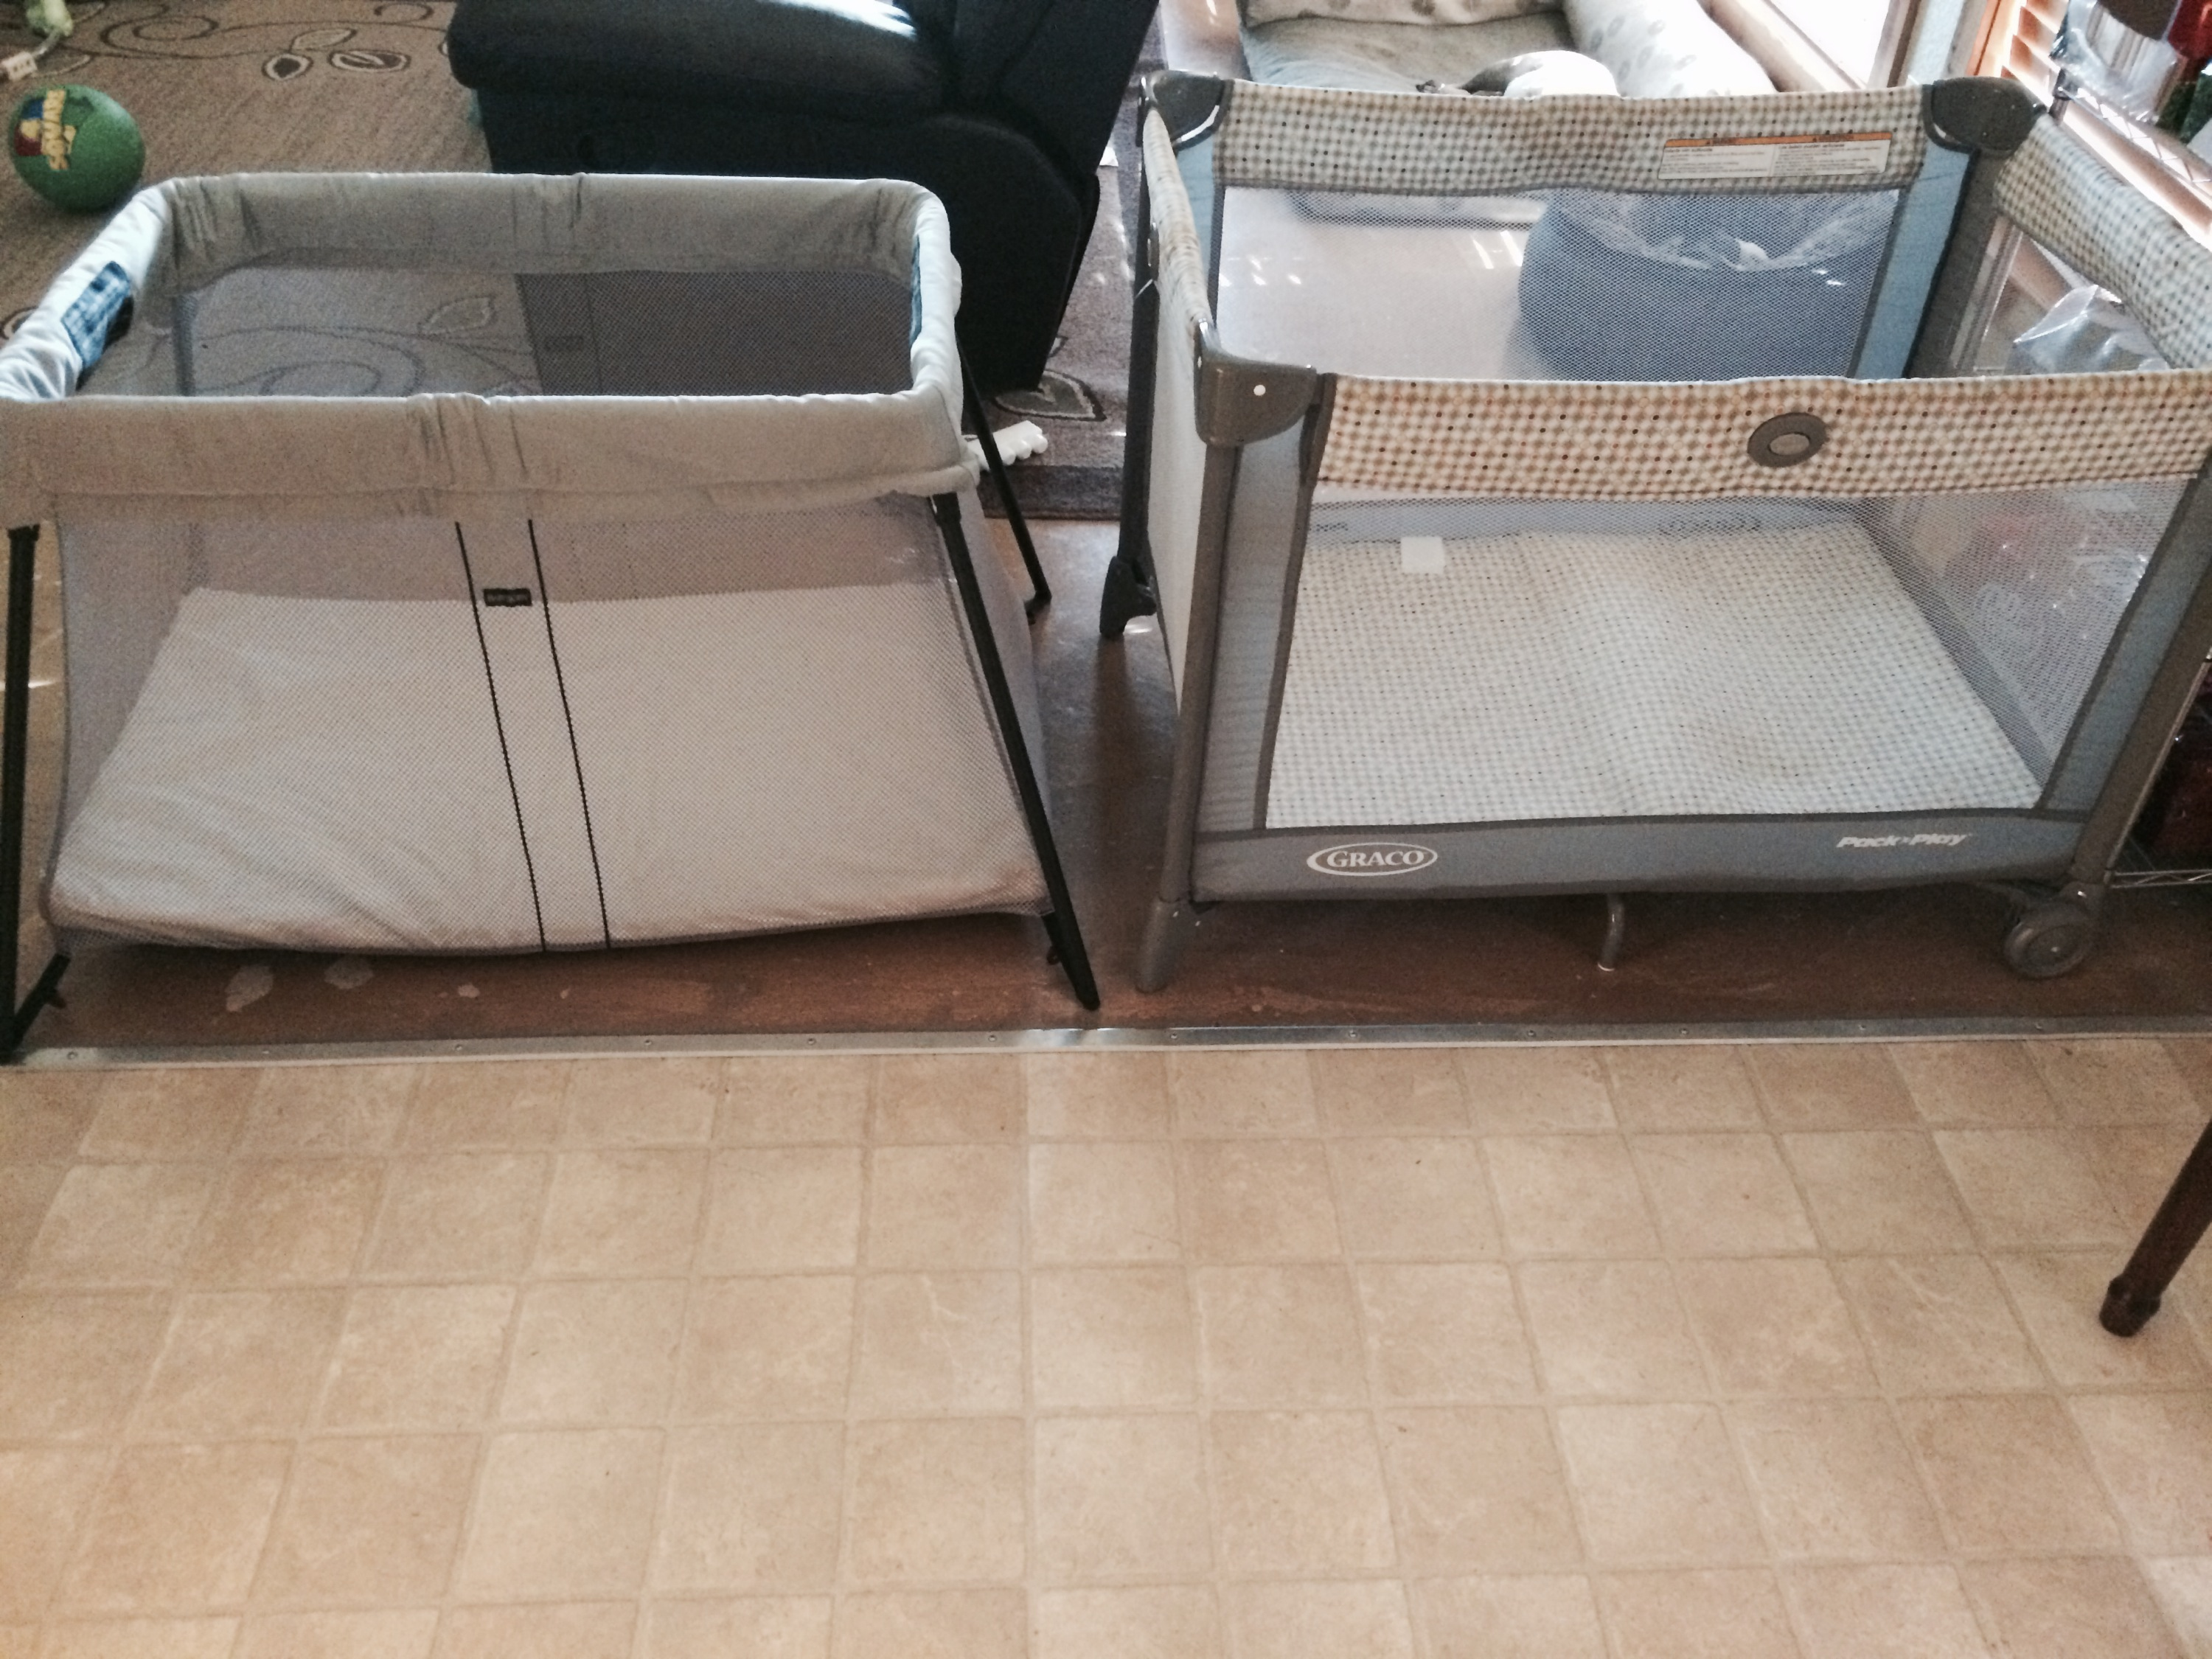 Indoor Side By Side Visual Comparison Bjorn Immediately Looks Quite A But This Is Deceiving As I Found When I Broke Out My Tape Baby Bjorn Travel Crib Light Graco Pack Play Peek baby Lotus Travel Crib